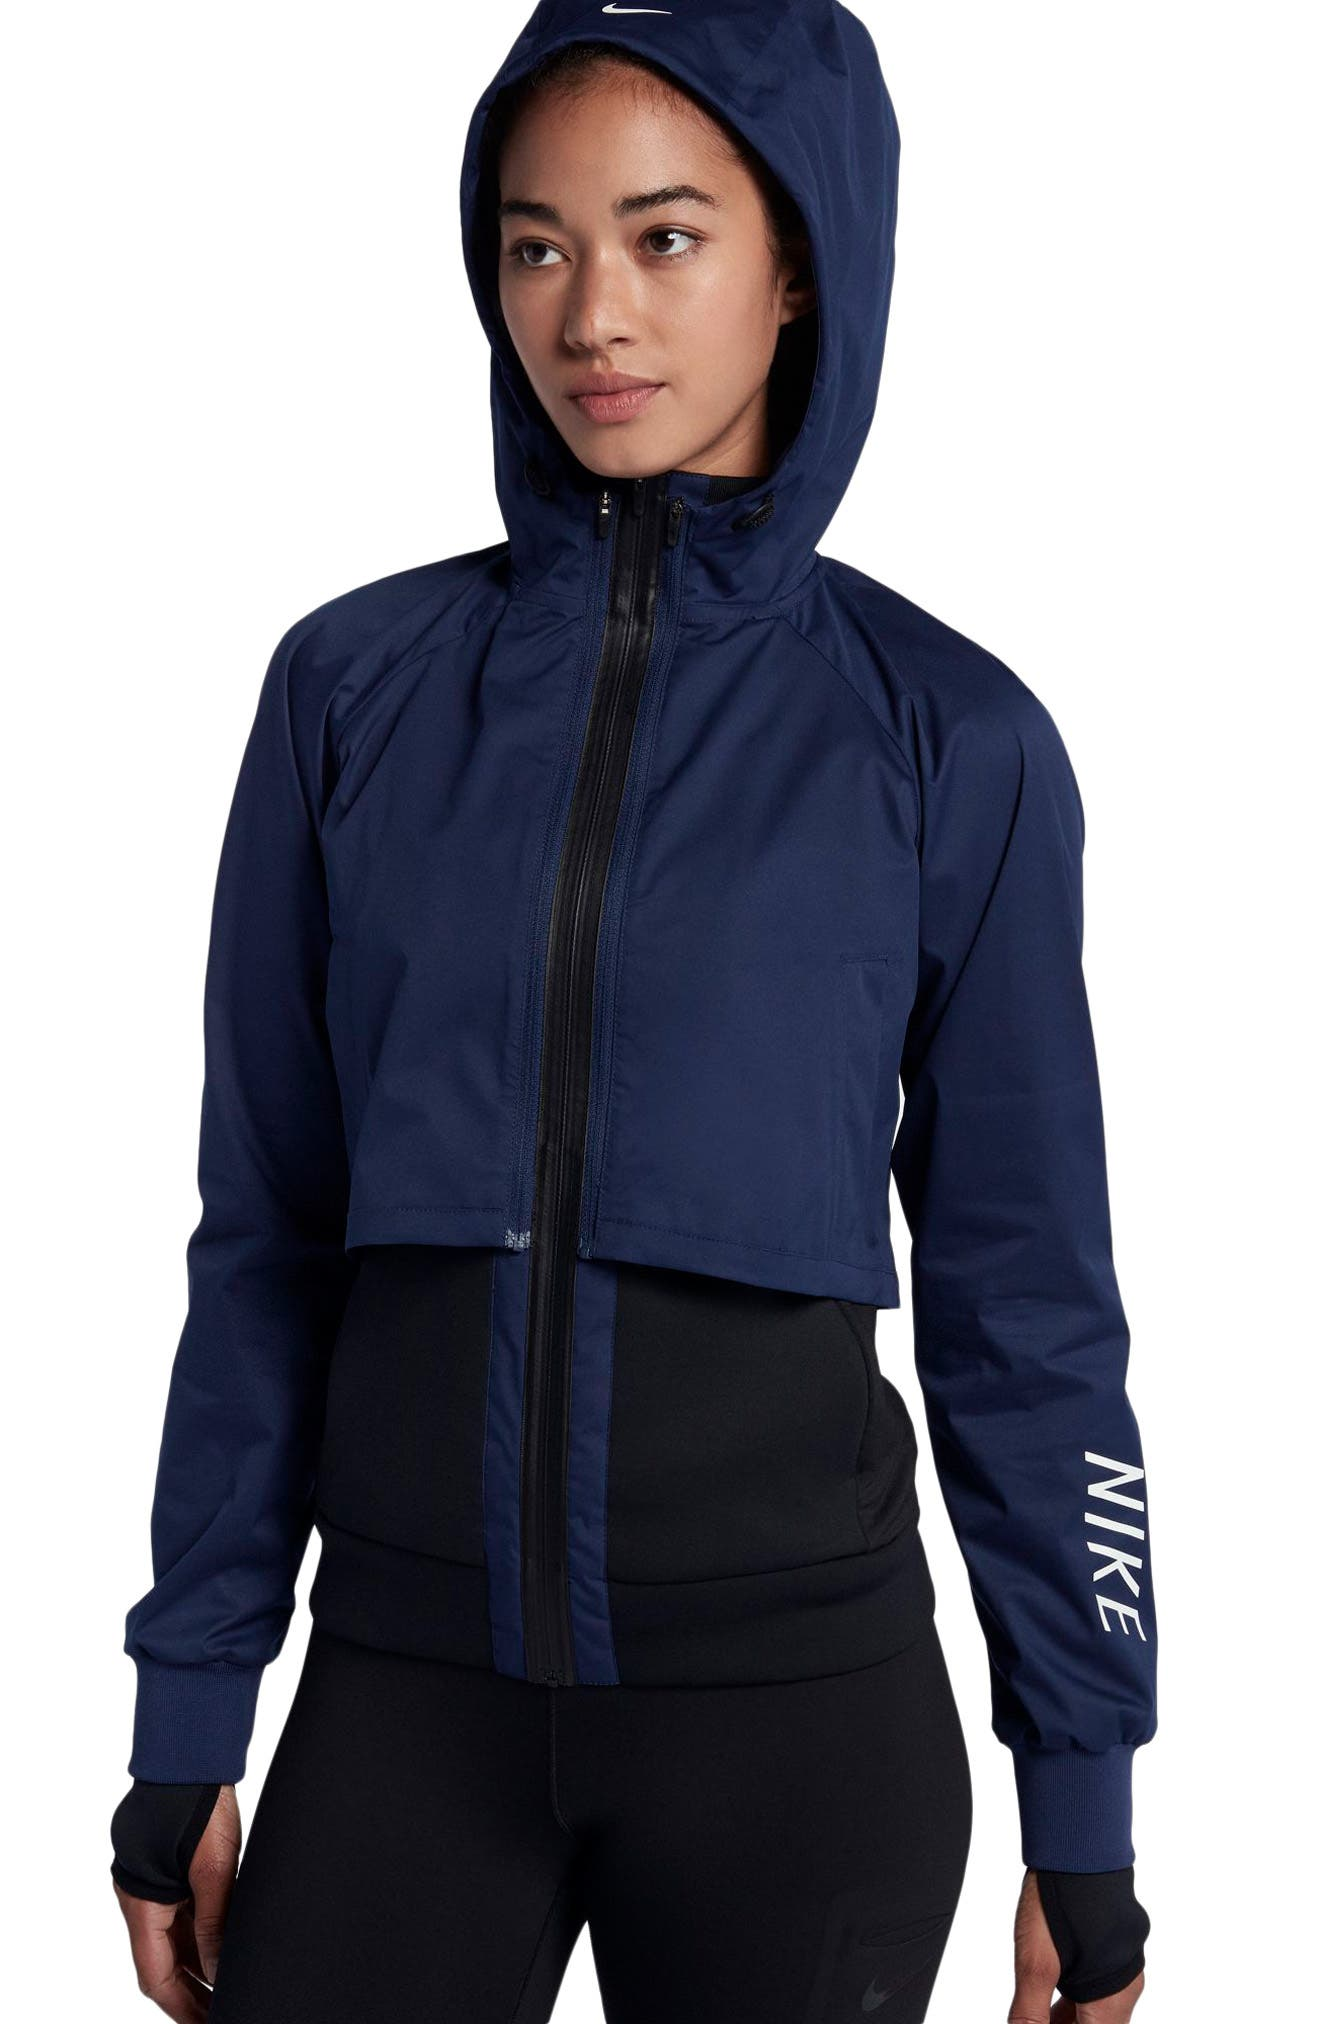 Therma Shield 2-in-1 Training Jacket,                         Main,                         color, 429